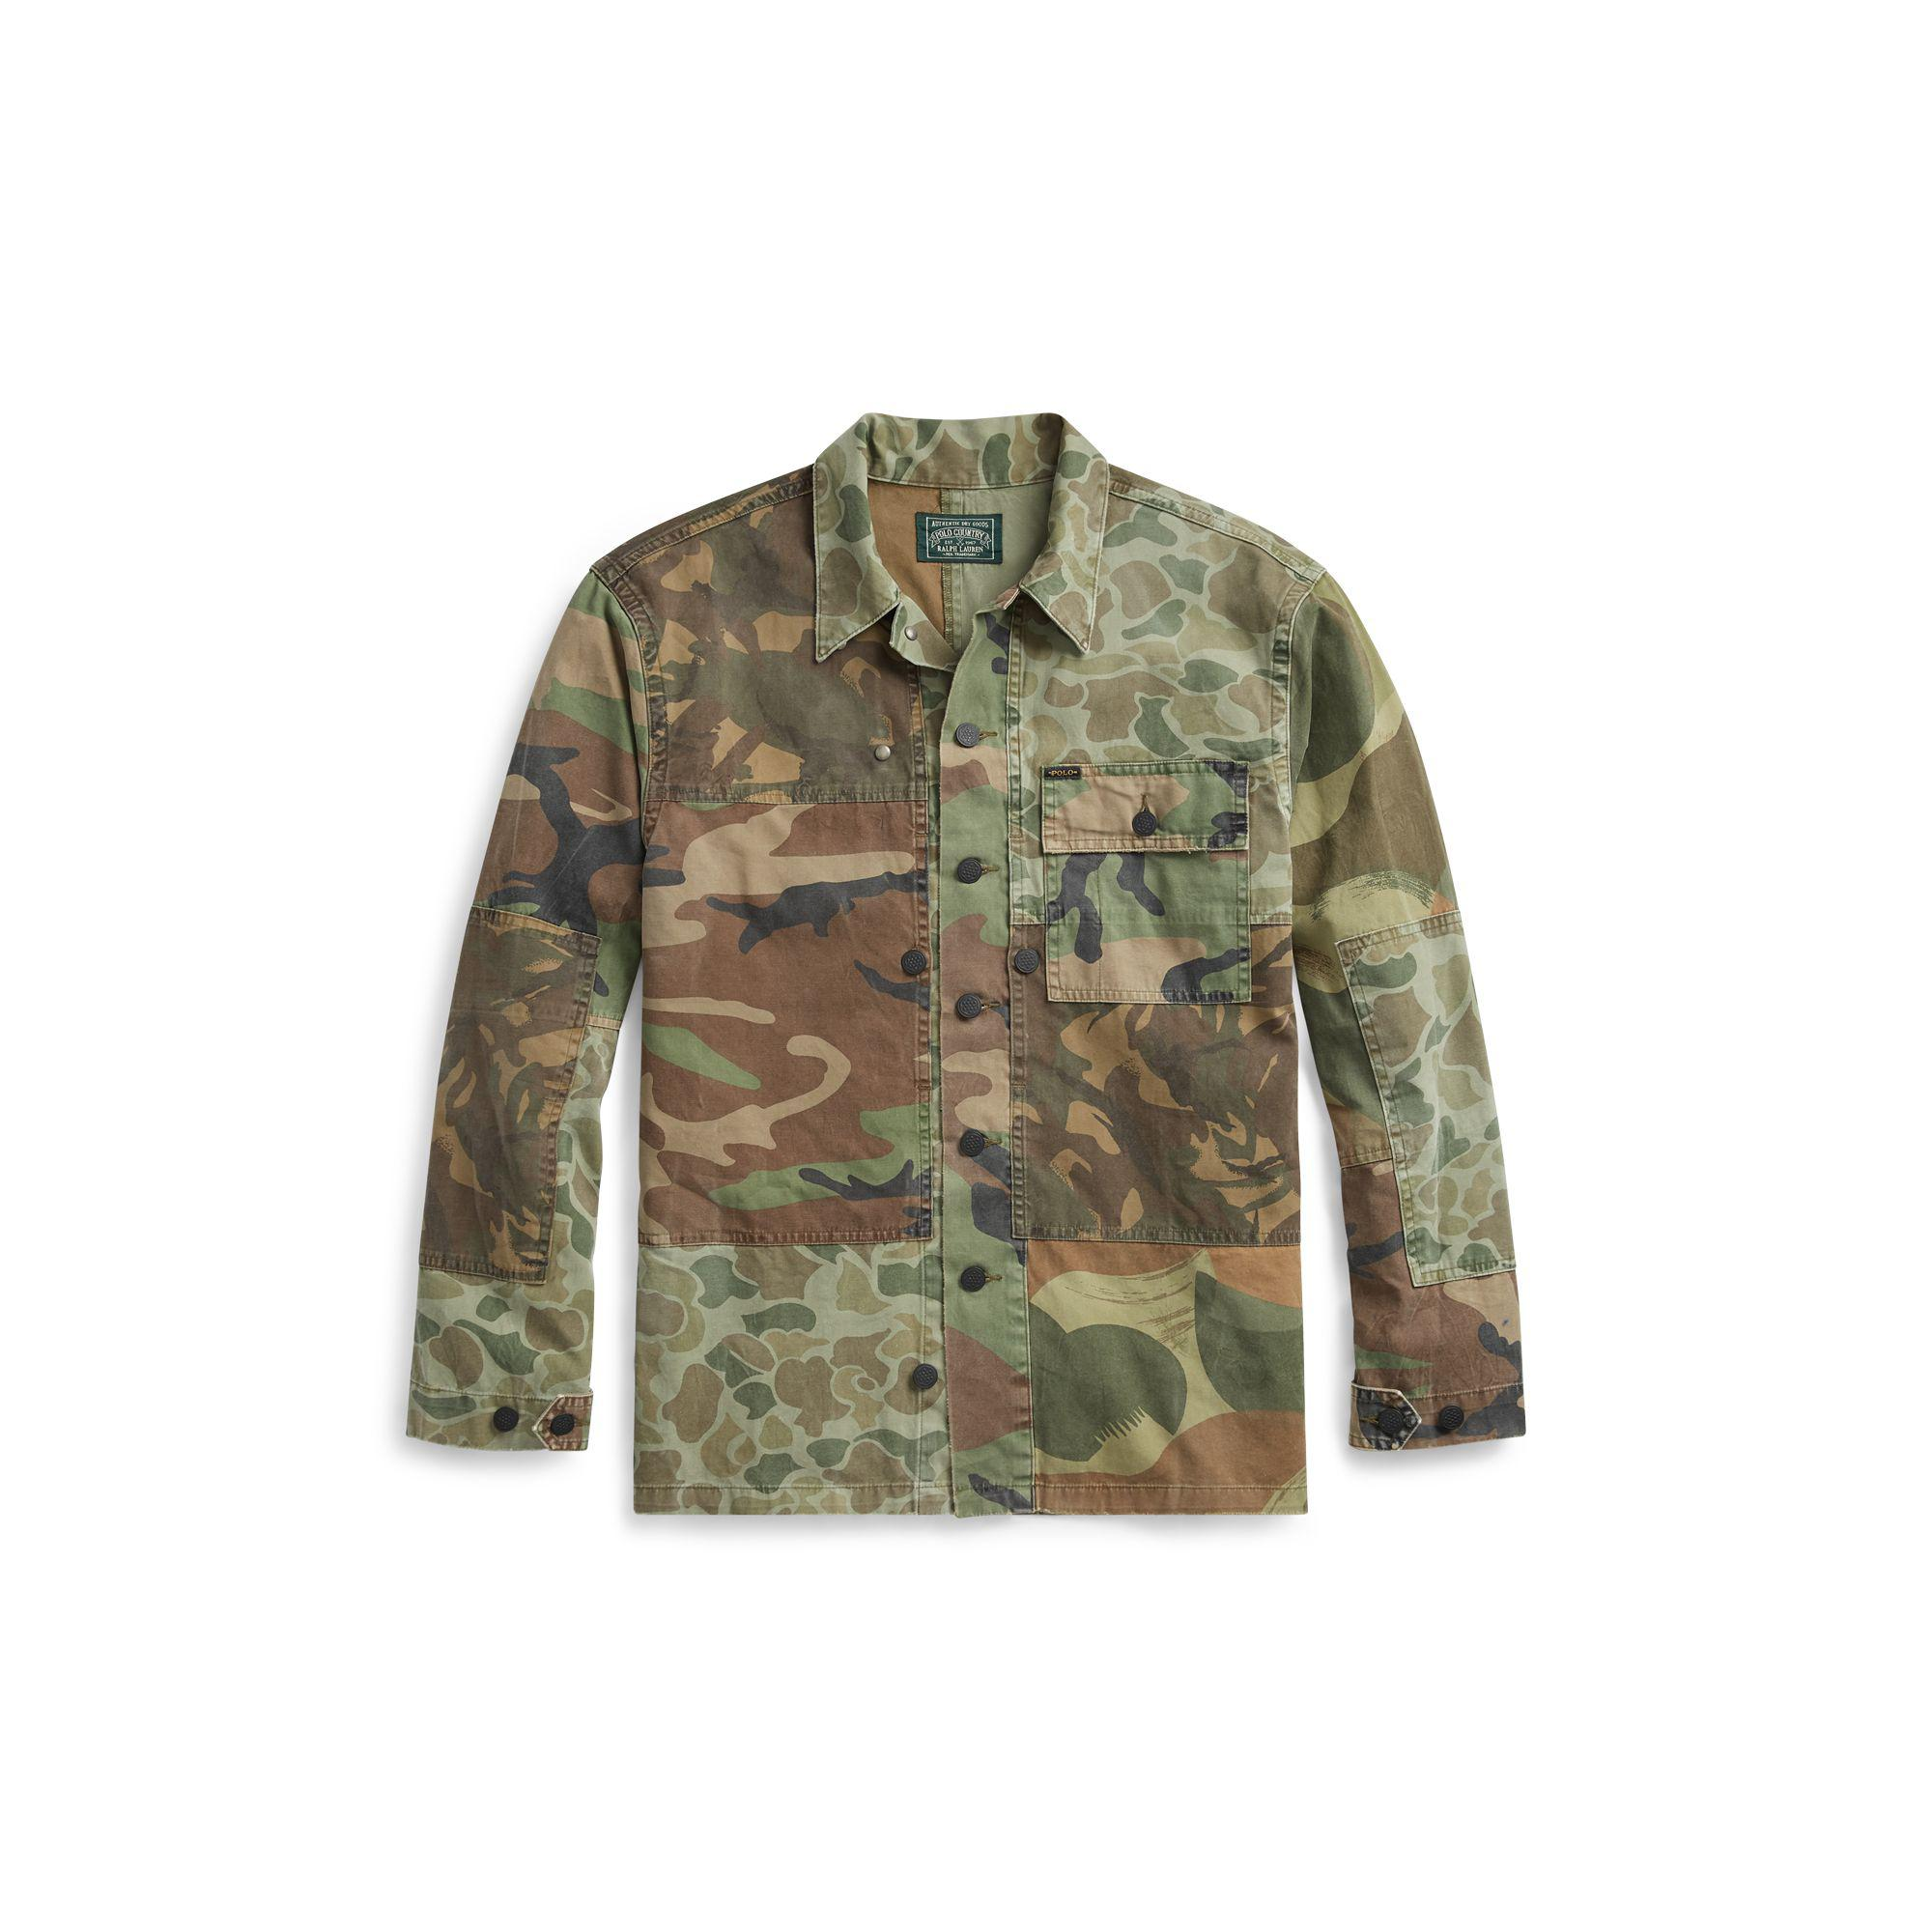 be3be770 Polo Ralph Lauren Classic Fit Camo Twill Shirt in Green for Men - Lyst